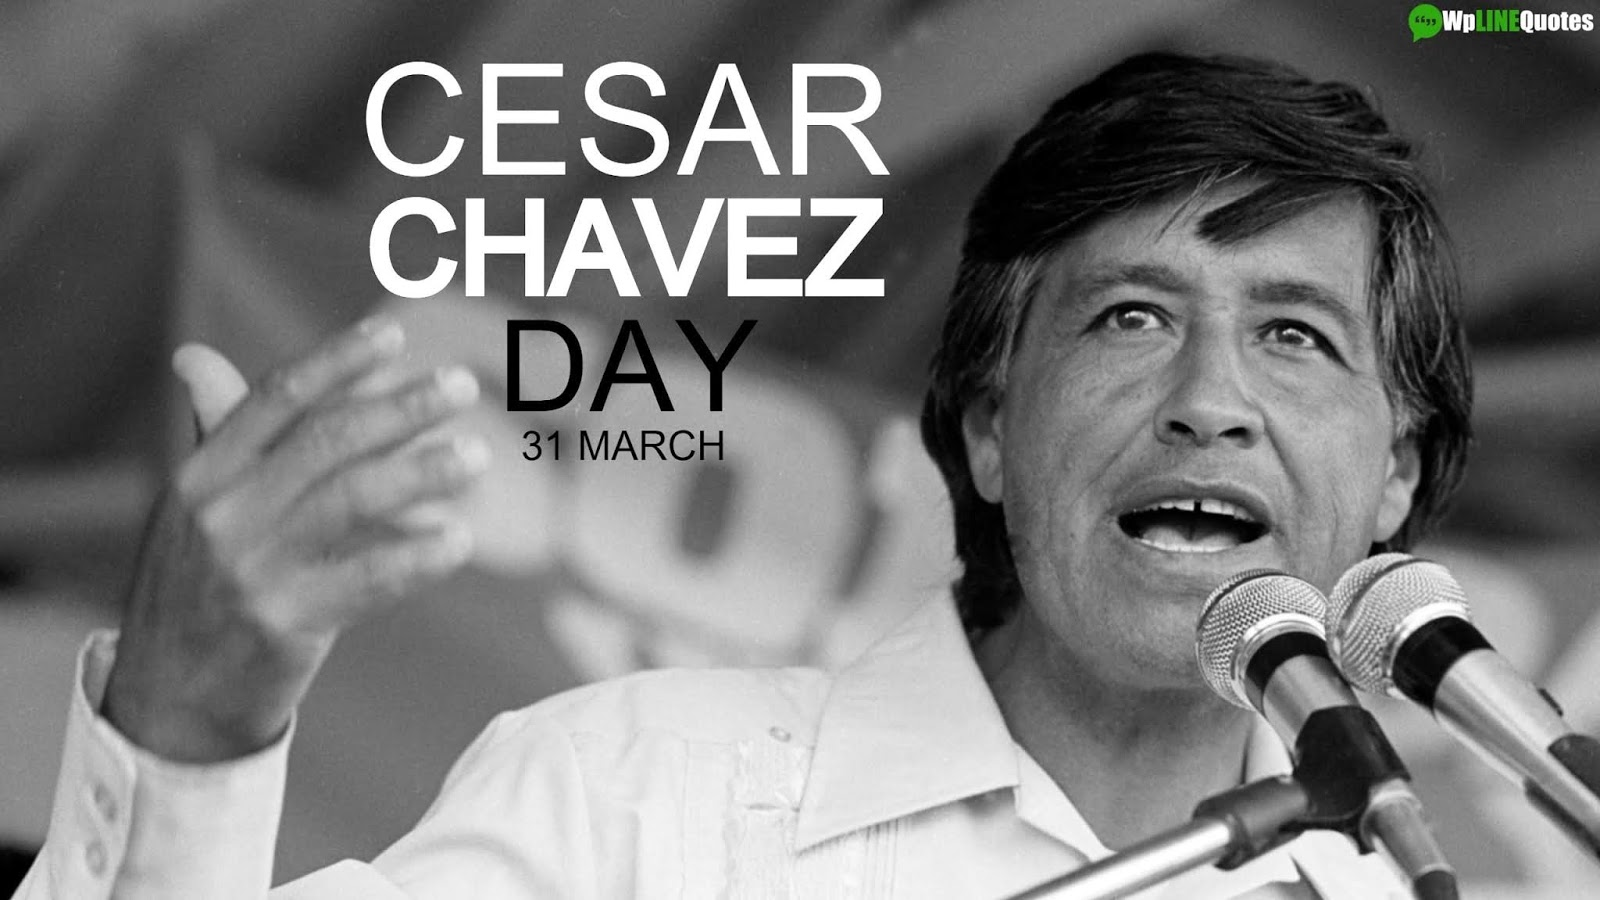 Cesar Chavez Day Quotes, Images, Poster, Pictures